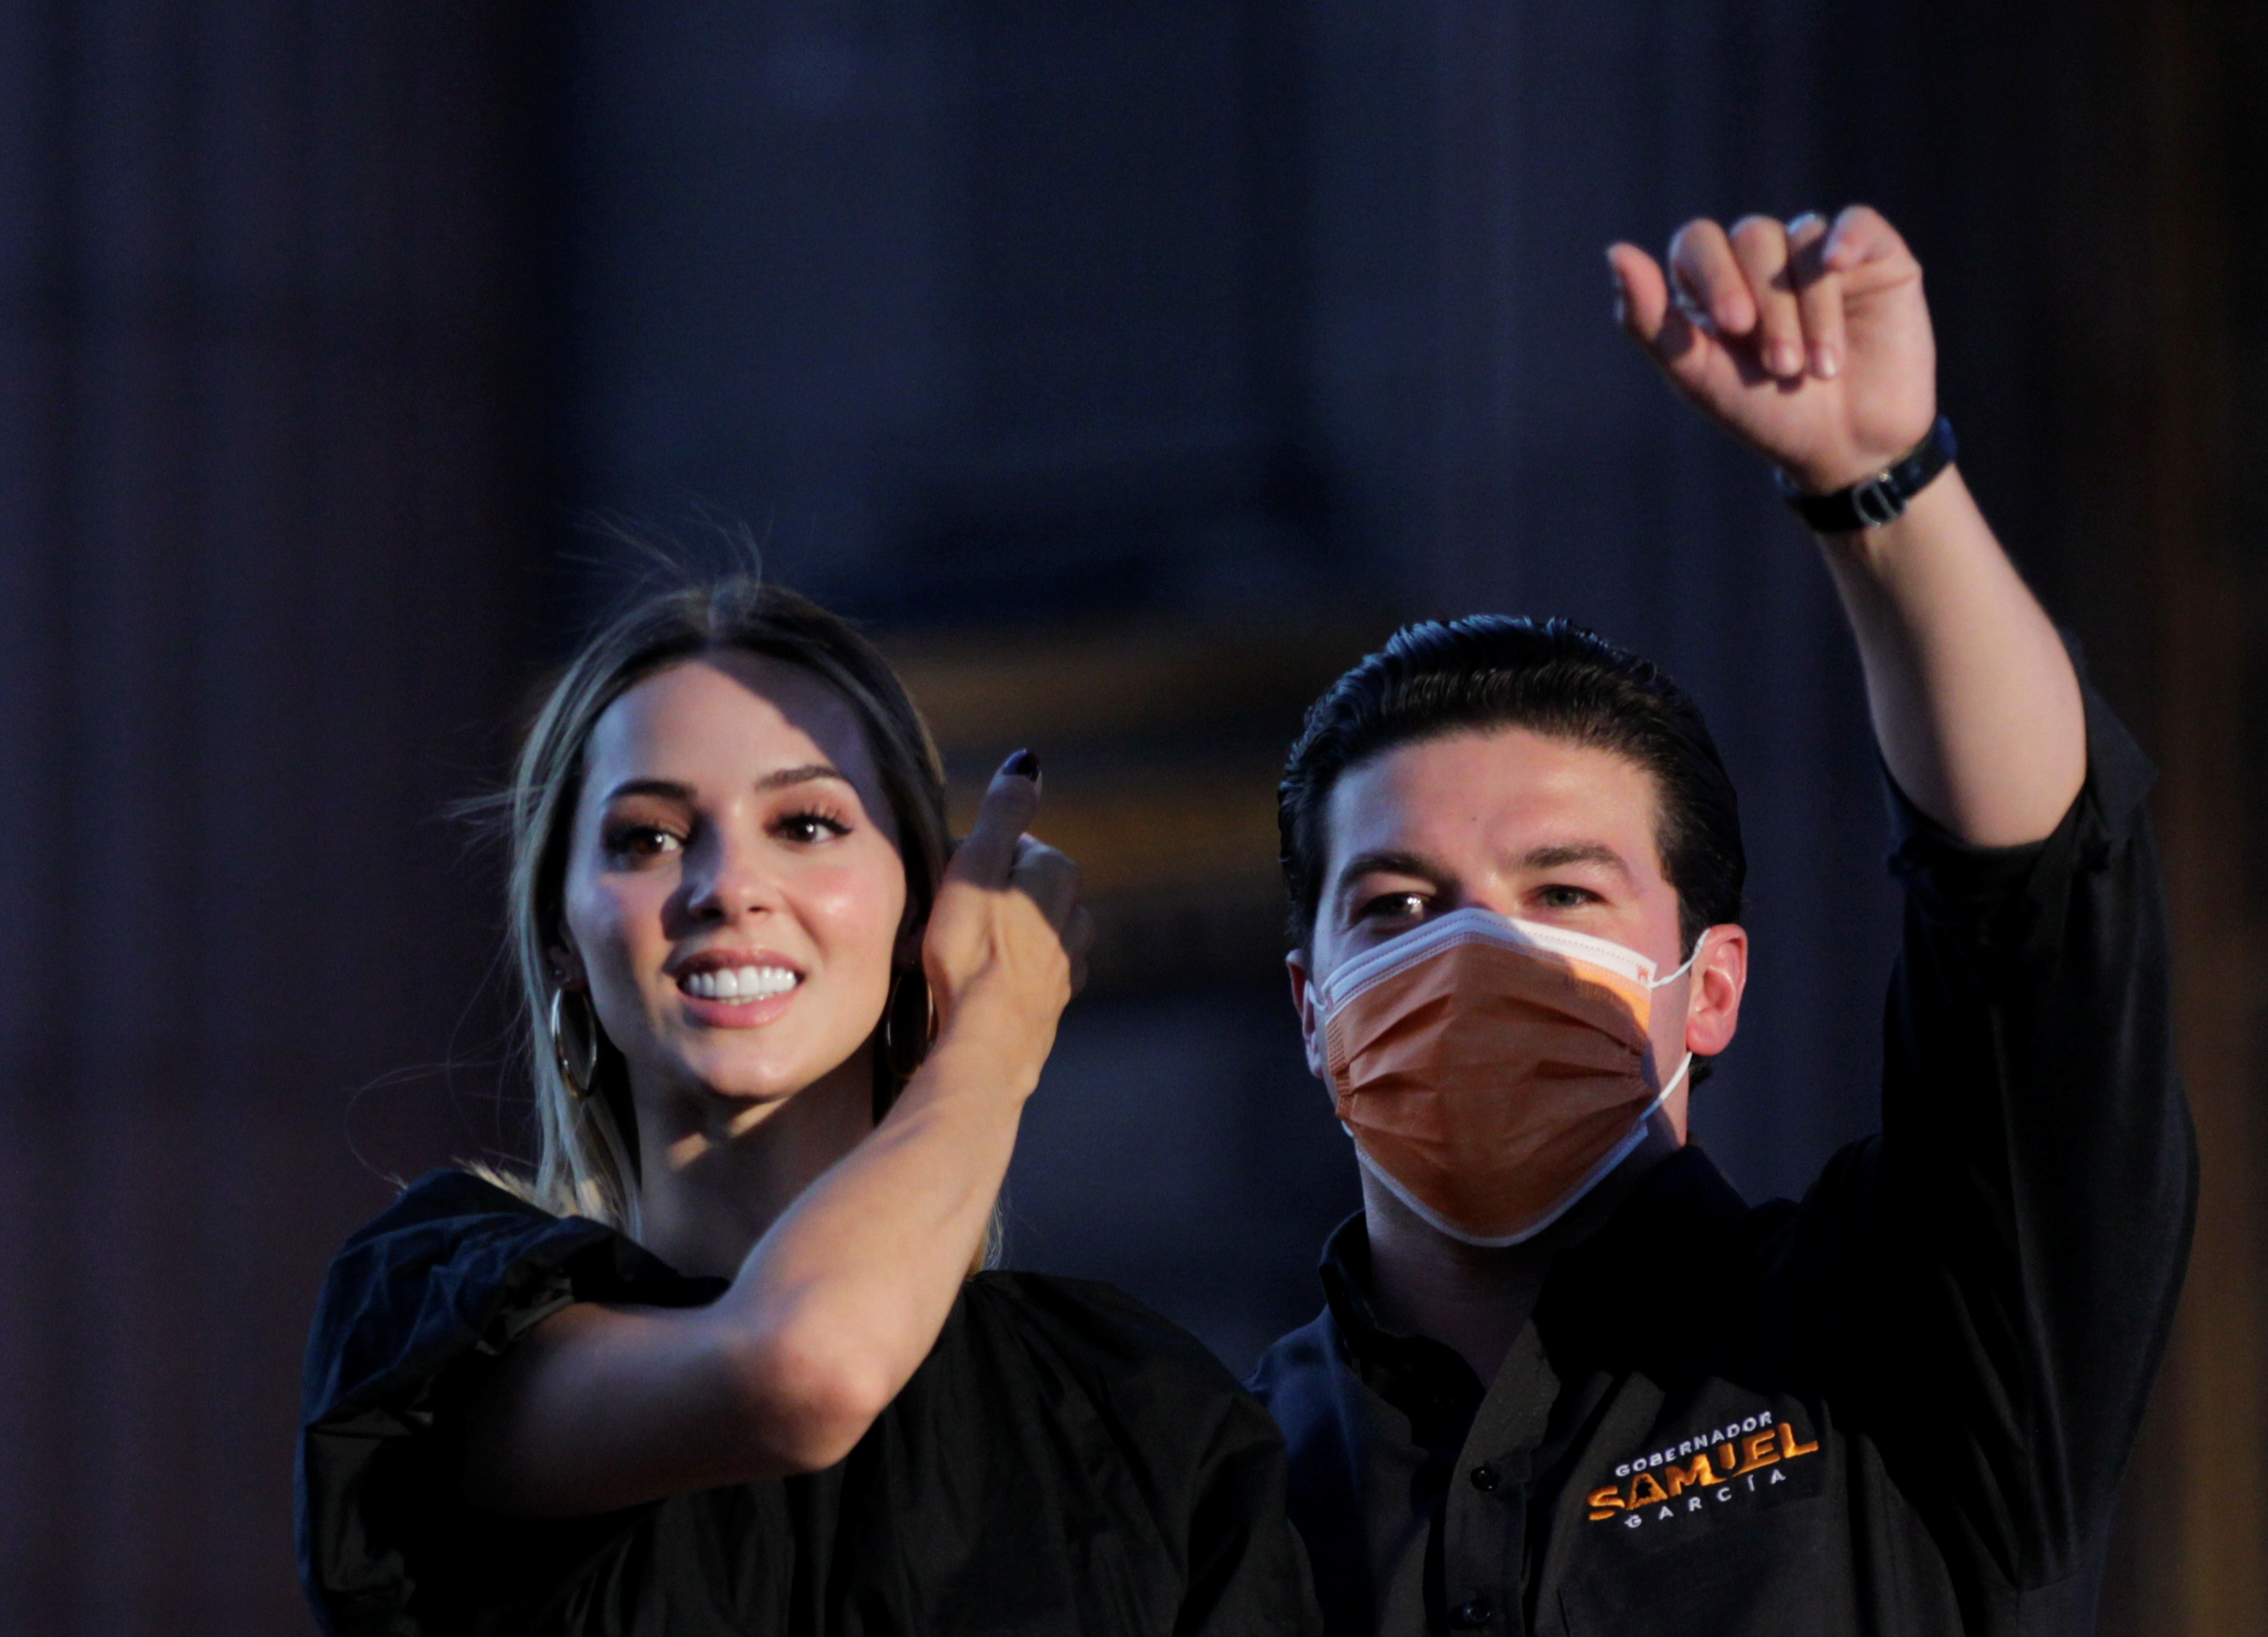 Samuel Garcia, Citizen Movement party's candidate for governor in the state of Nuevo Leon, addresses supporters next to his wife Mariana Rodriguez, a day after the mid-term elections, during a celebration at the Macroplaza in Monterrey, Mexico June 7, 2021. REUTERS/Daniel Becerril